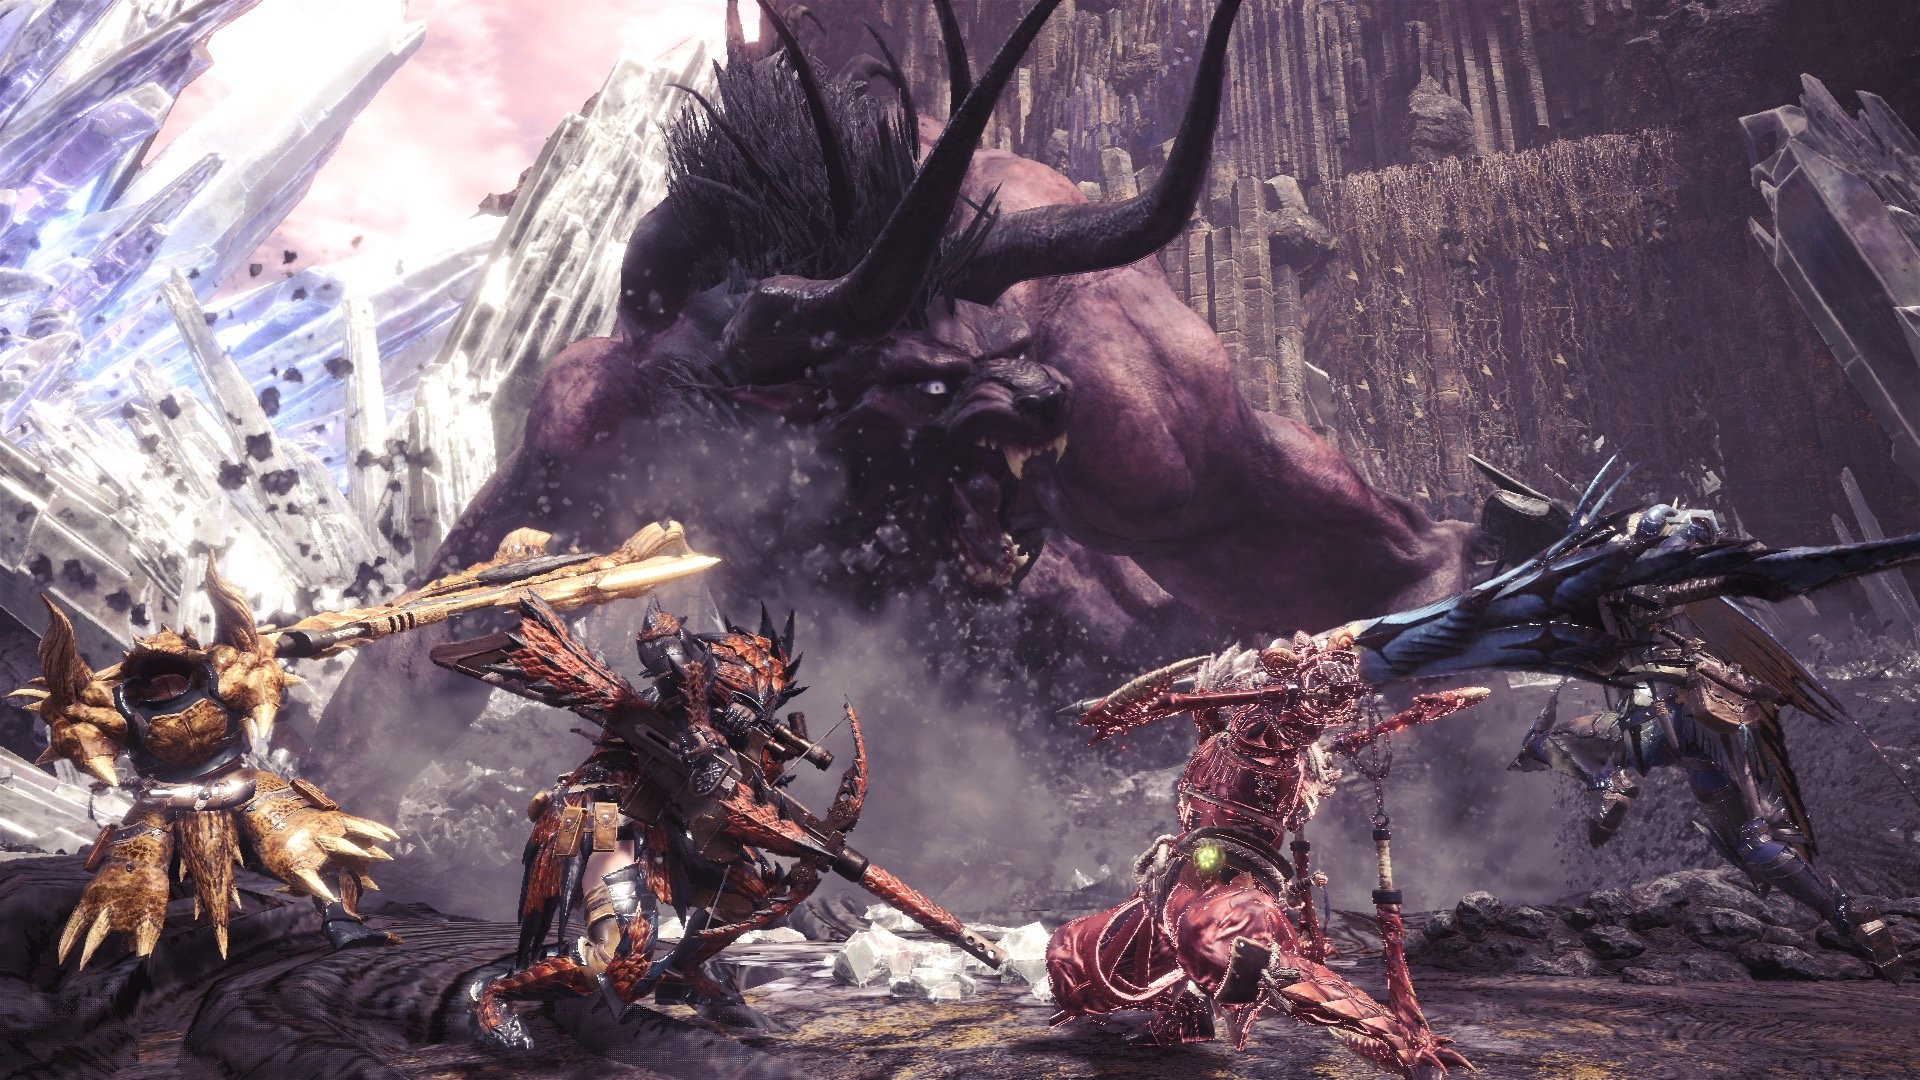 Monster Hunter: World's Iceborne expansion will have its own story screenshot